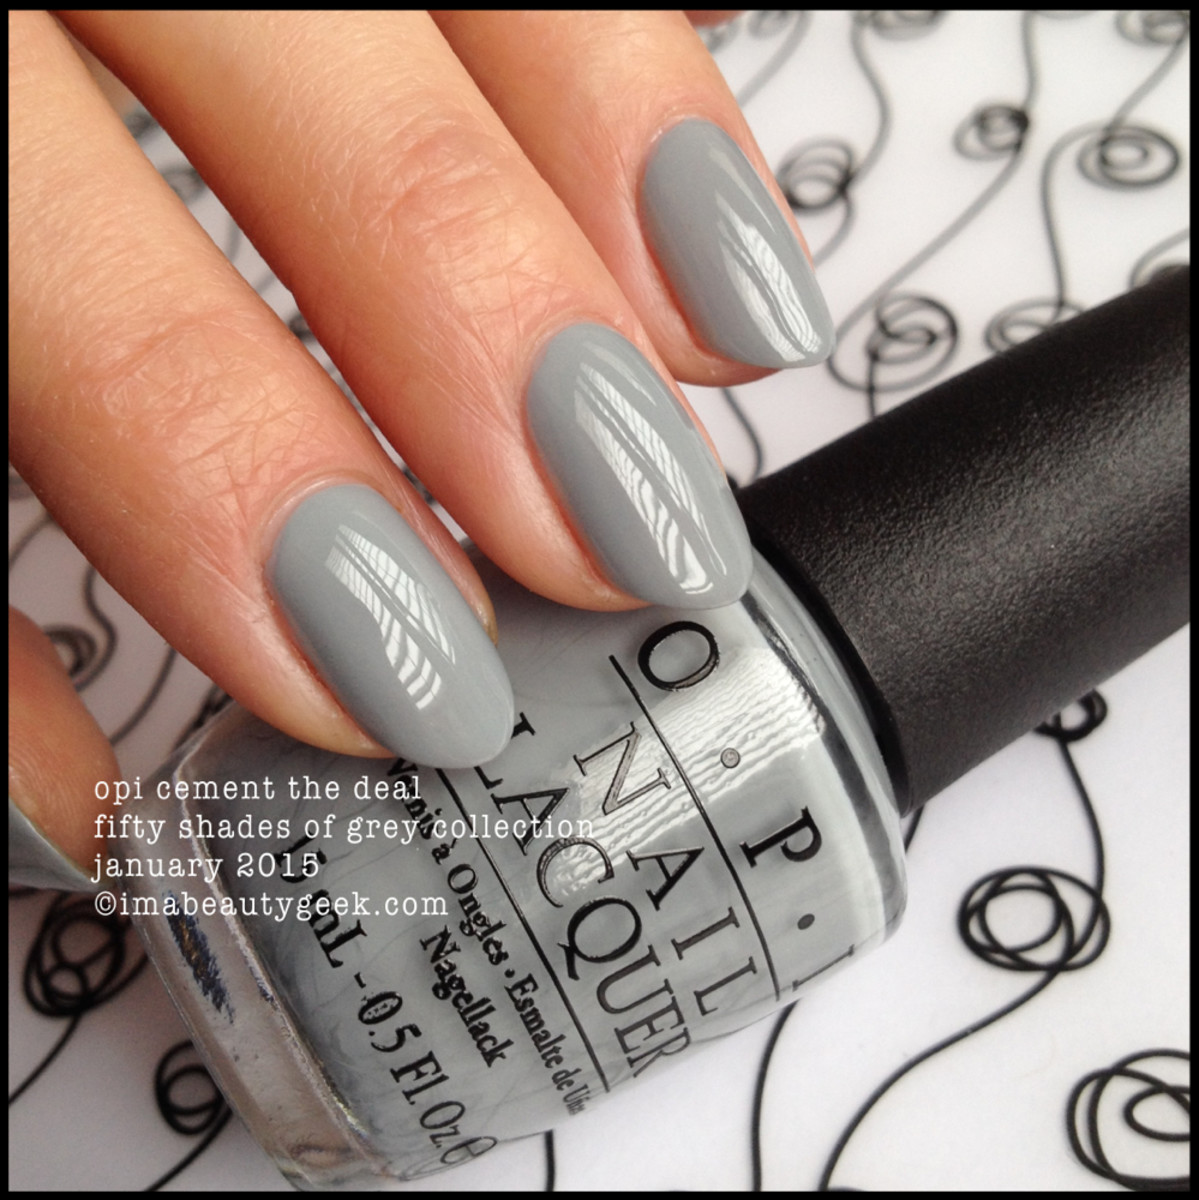 OPI Cement The Deal 50 Shades